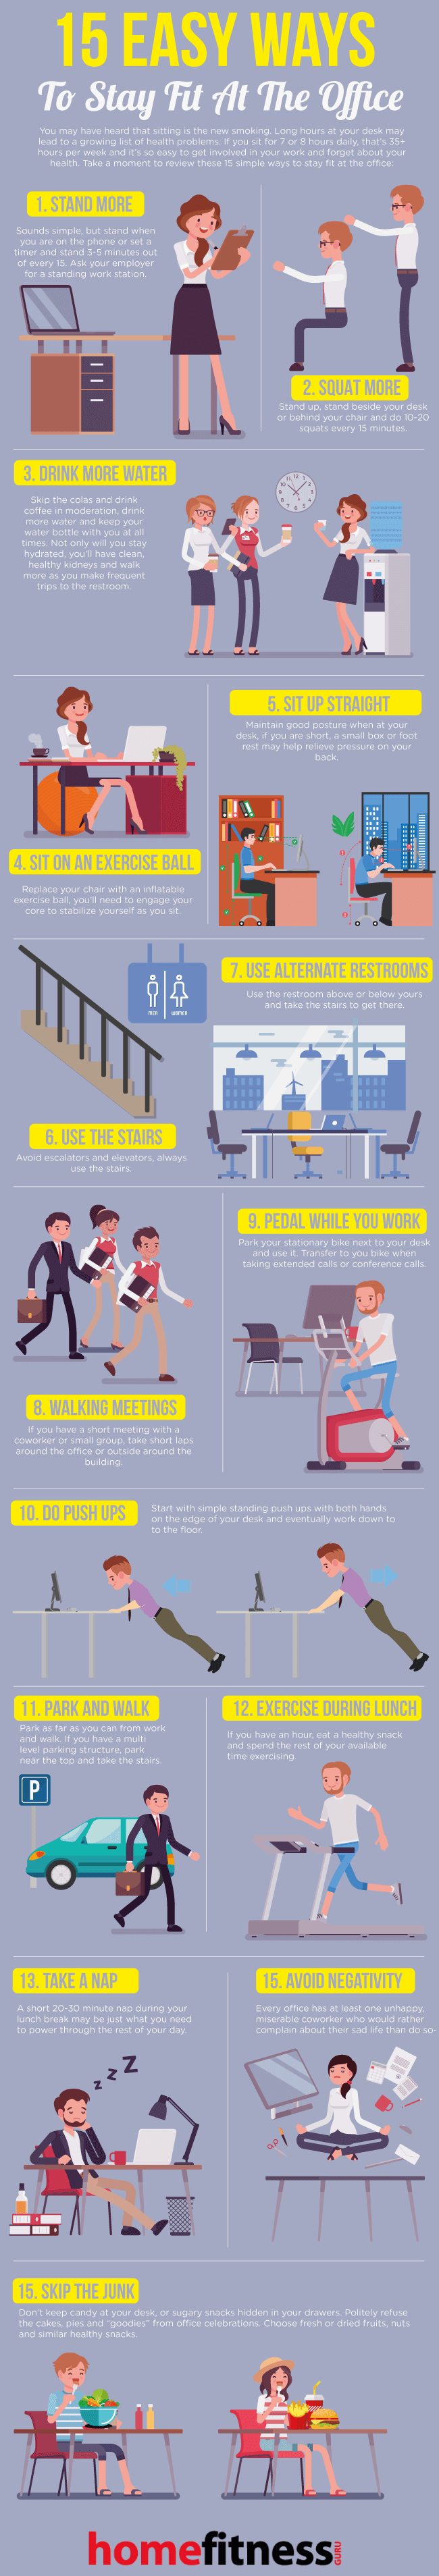 How to Build Fitness Activities into Your Sedentary Workspace - Infographic